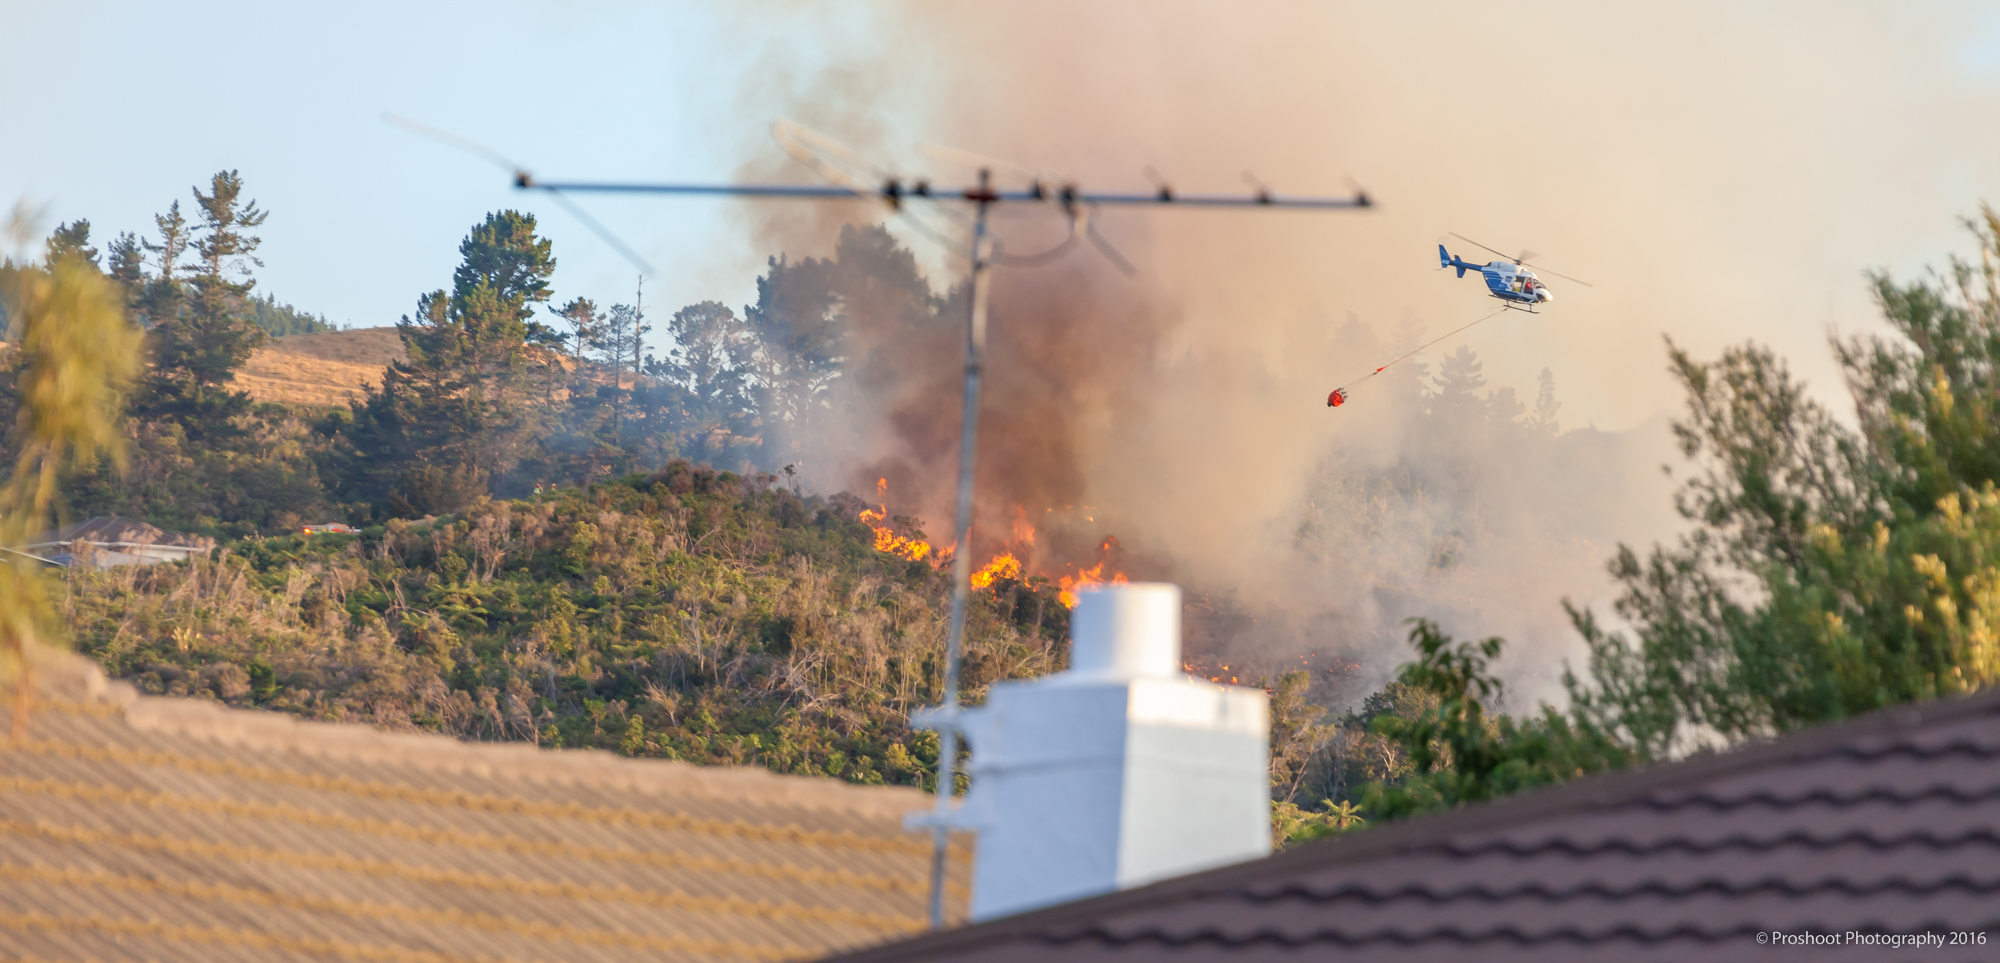 Upper Hutt Scrub Fire Images 5611